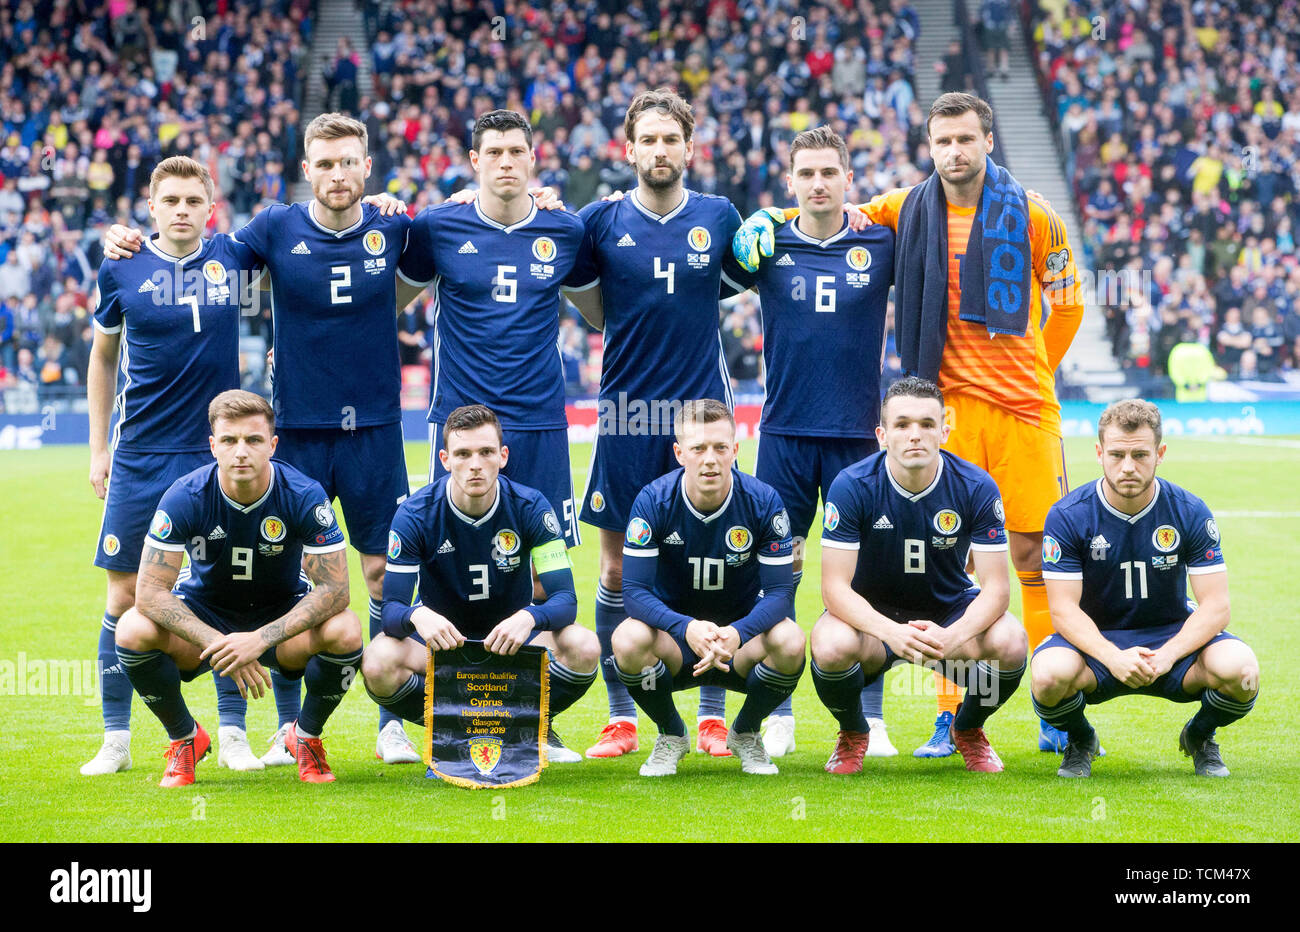 Scotland's James Forrest (back left to right), Stephen O'Donnell, Scott McKenna, Charlie Mulgrew, Kenny McLean, David Marshall, Eamonn Brophy (front left to right), Andrew Robertson, Callum McGregor, John McGinn and Ryan Fraser pose for a photograph before the UEFA Euro 2020 Qualifying, Group I match at Hampden Park, Glasgow. - Stock Image